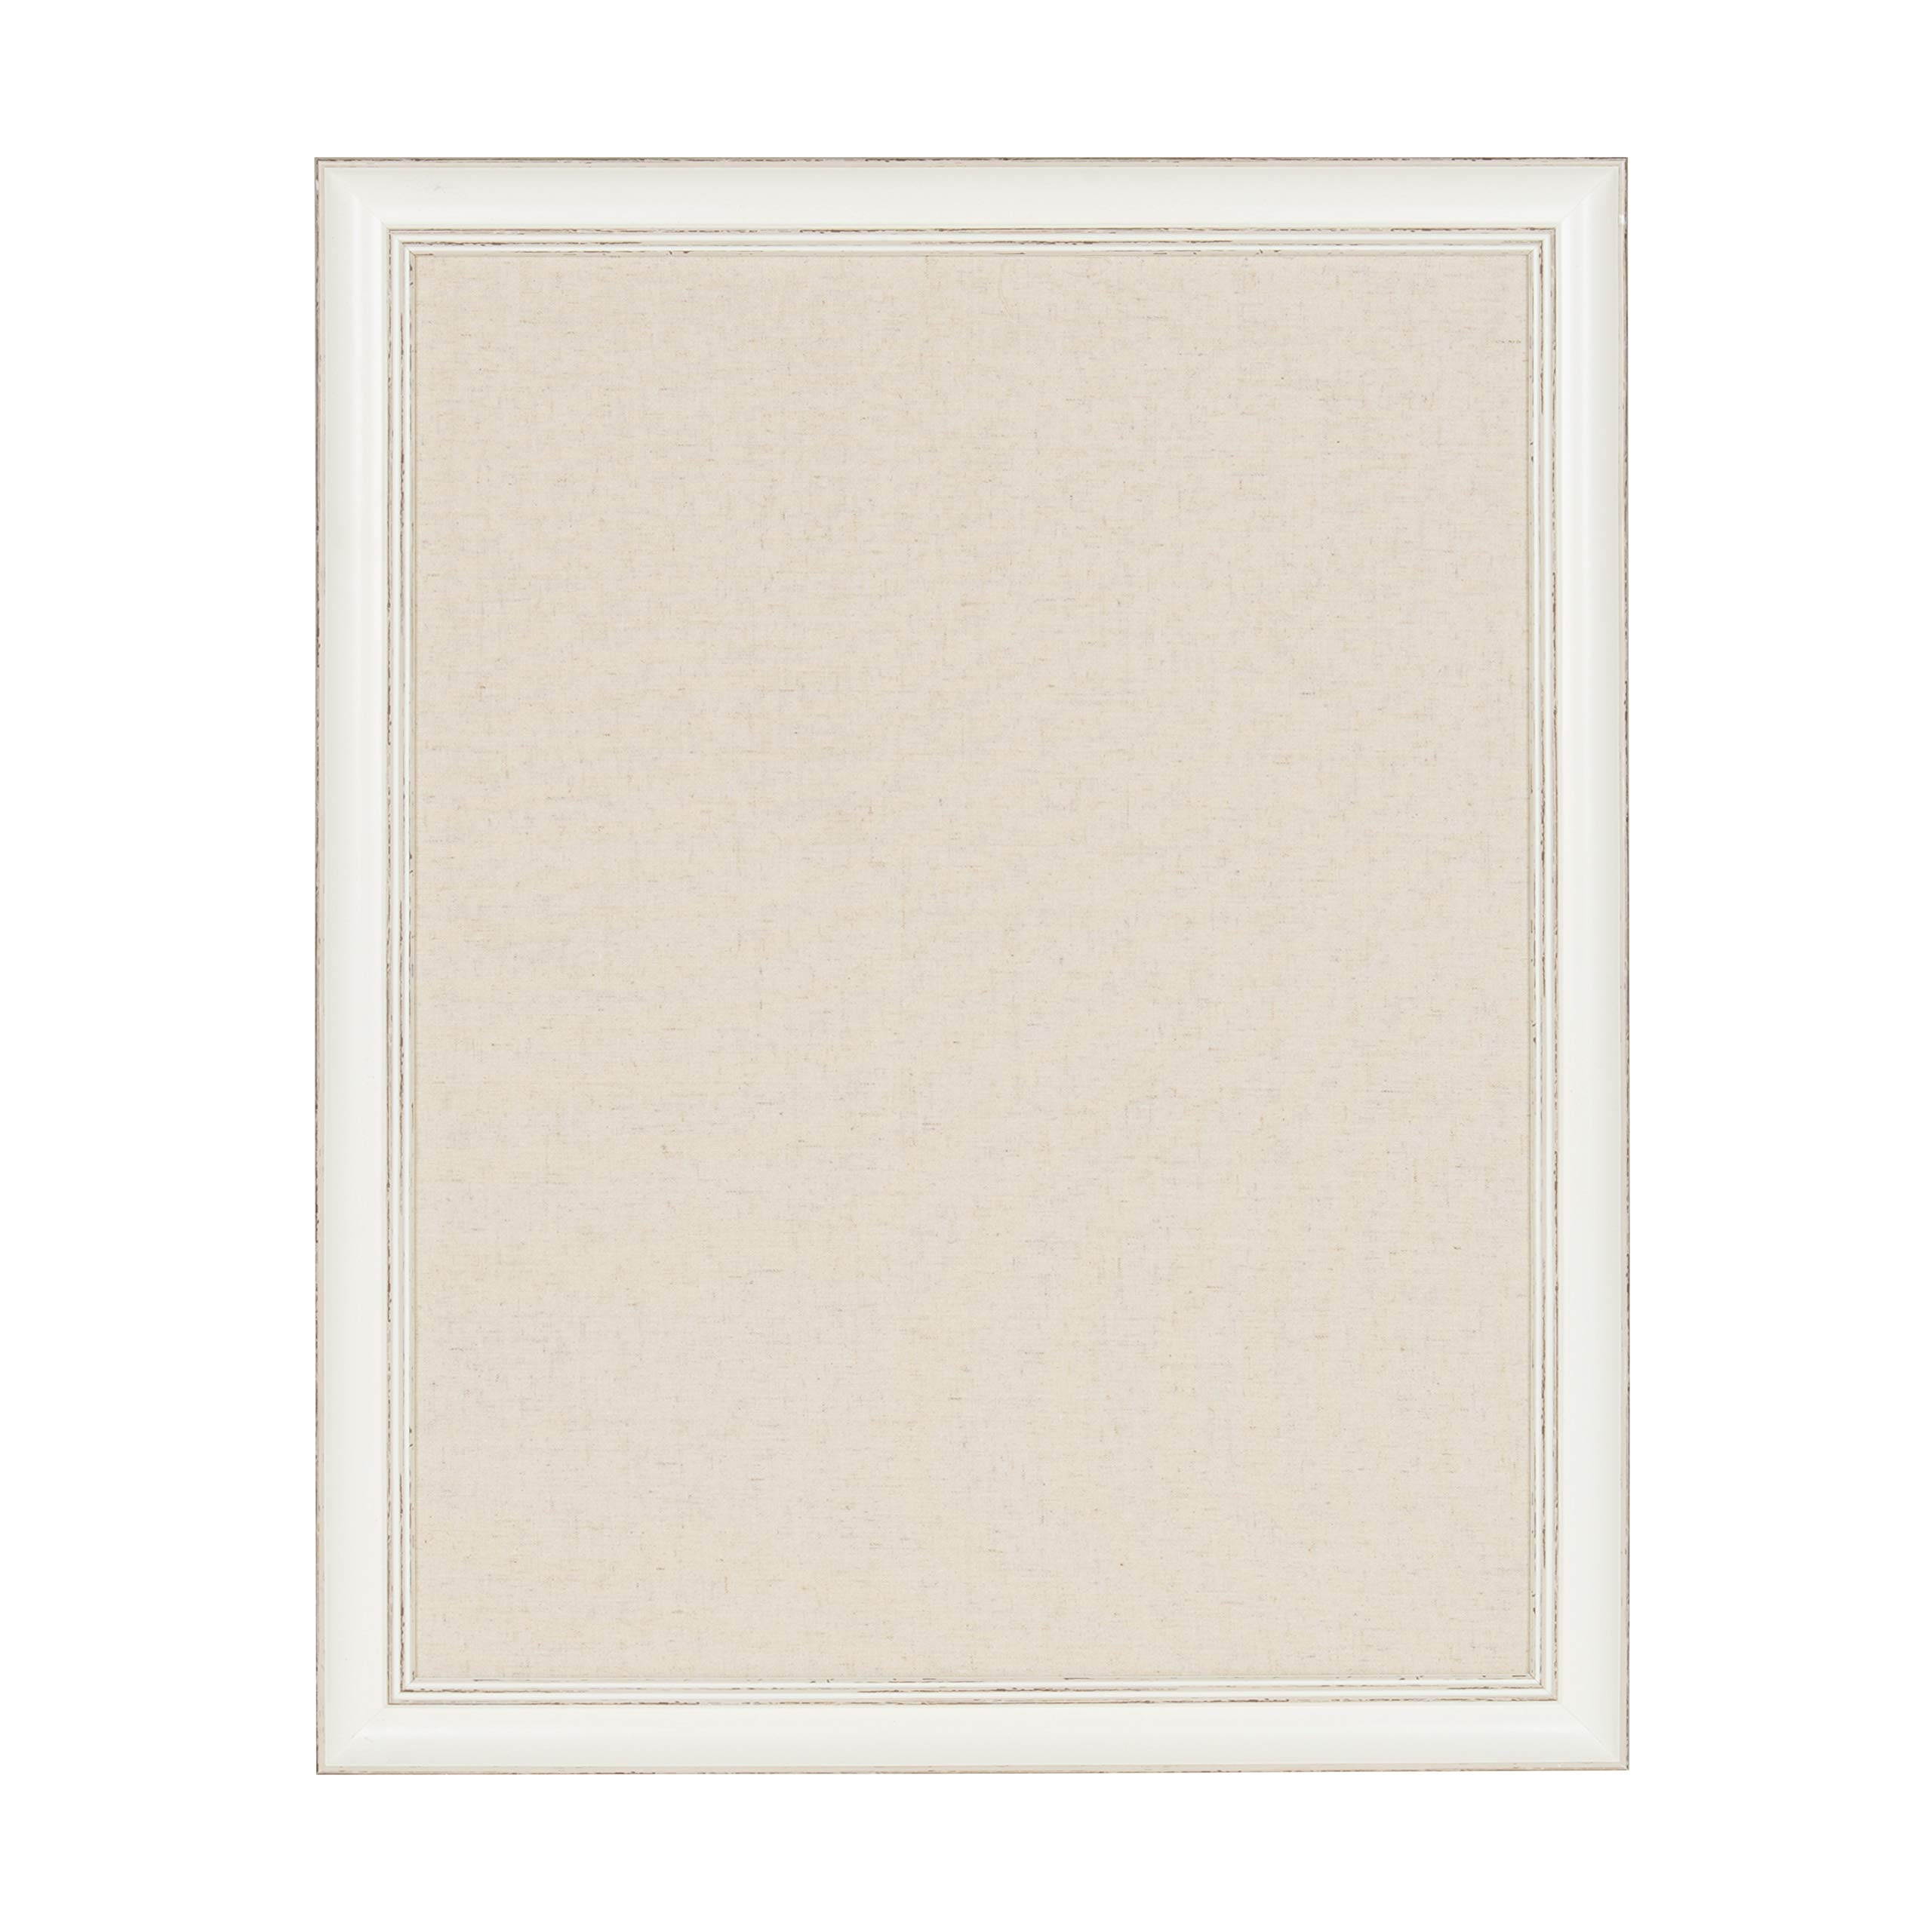 DesignOvation Macon Framed Linen Fabric Pinboard, 23x29, Soft White by Kate and Laurel